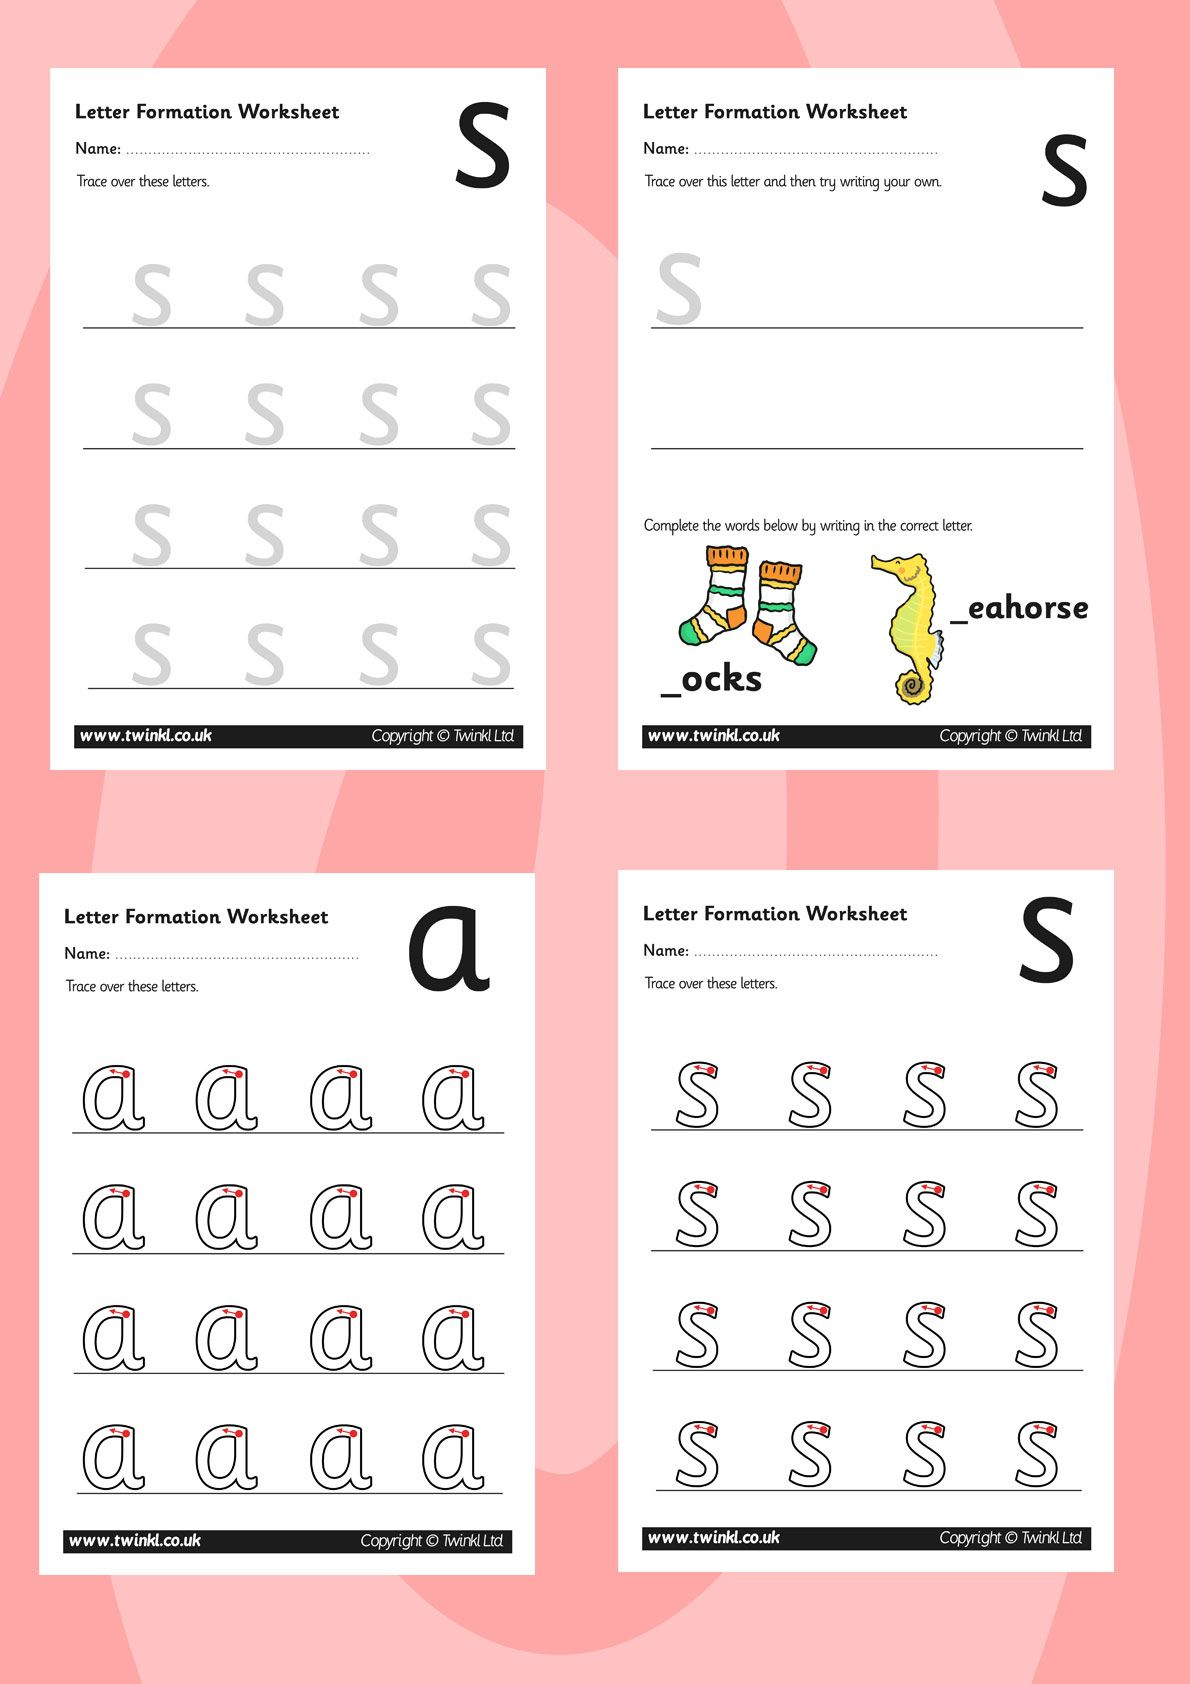 Twinkl Resources >> Phase 2 Letter Formation Worksheets for Letter Tracing Worksheets Twinkl